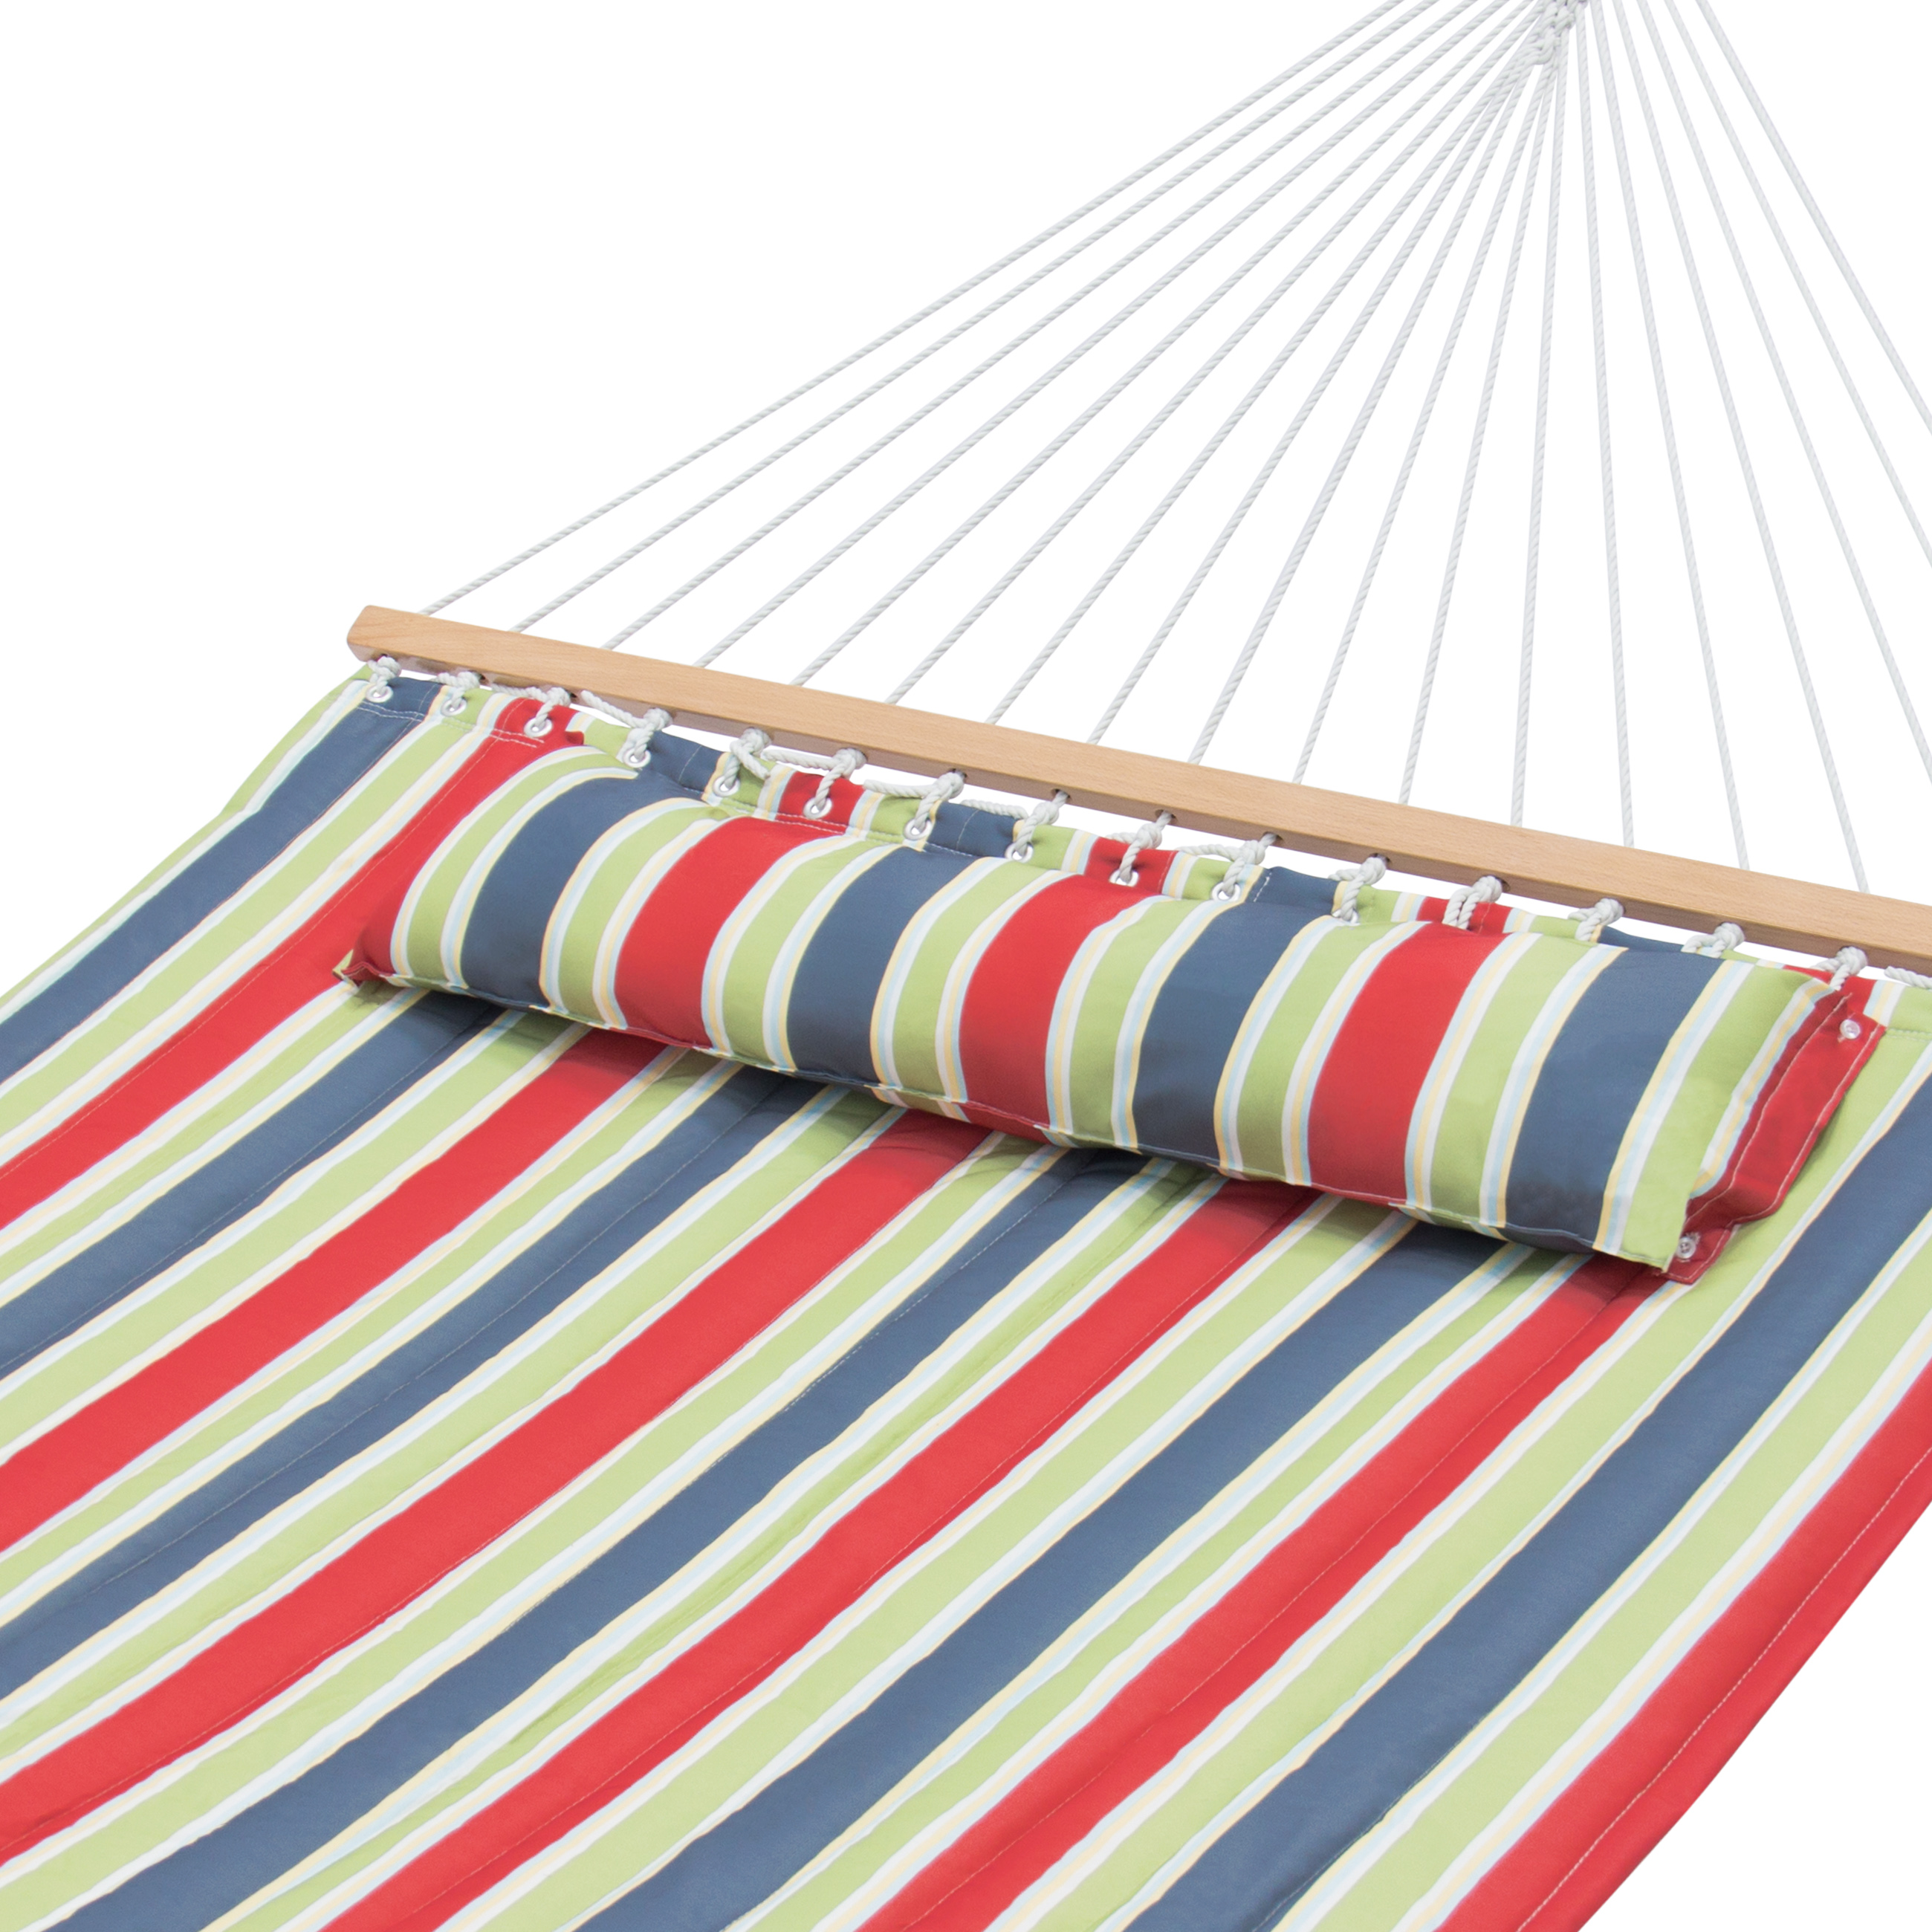 Best Choice Products Quilted Double Hammock w  Detachable Pillow, Spreader Bar Red, Blue, and Green Stripes by Best Choice Products